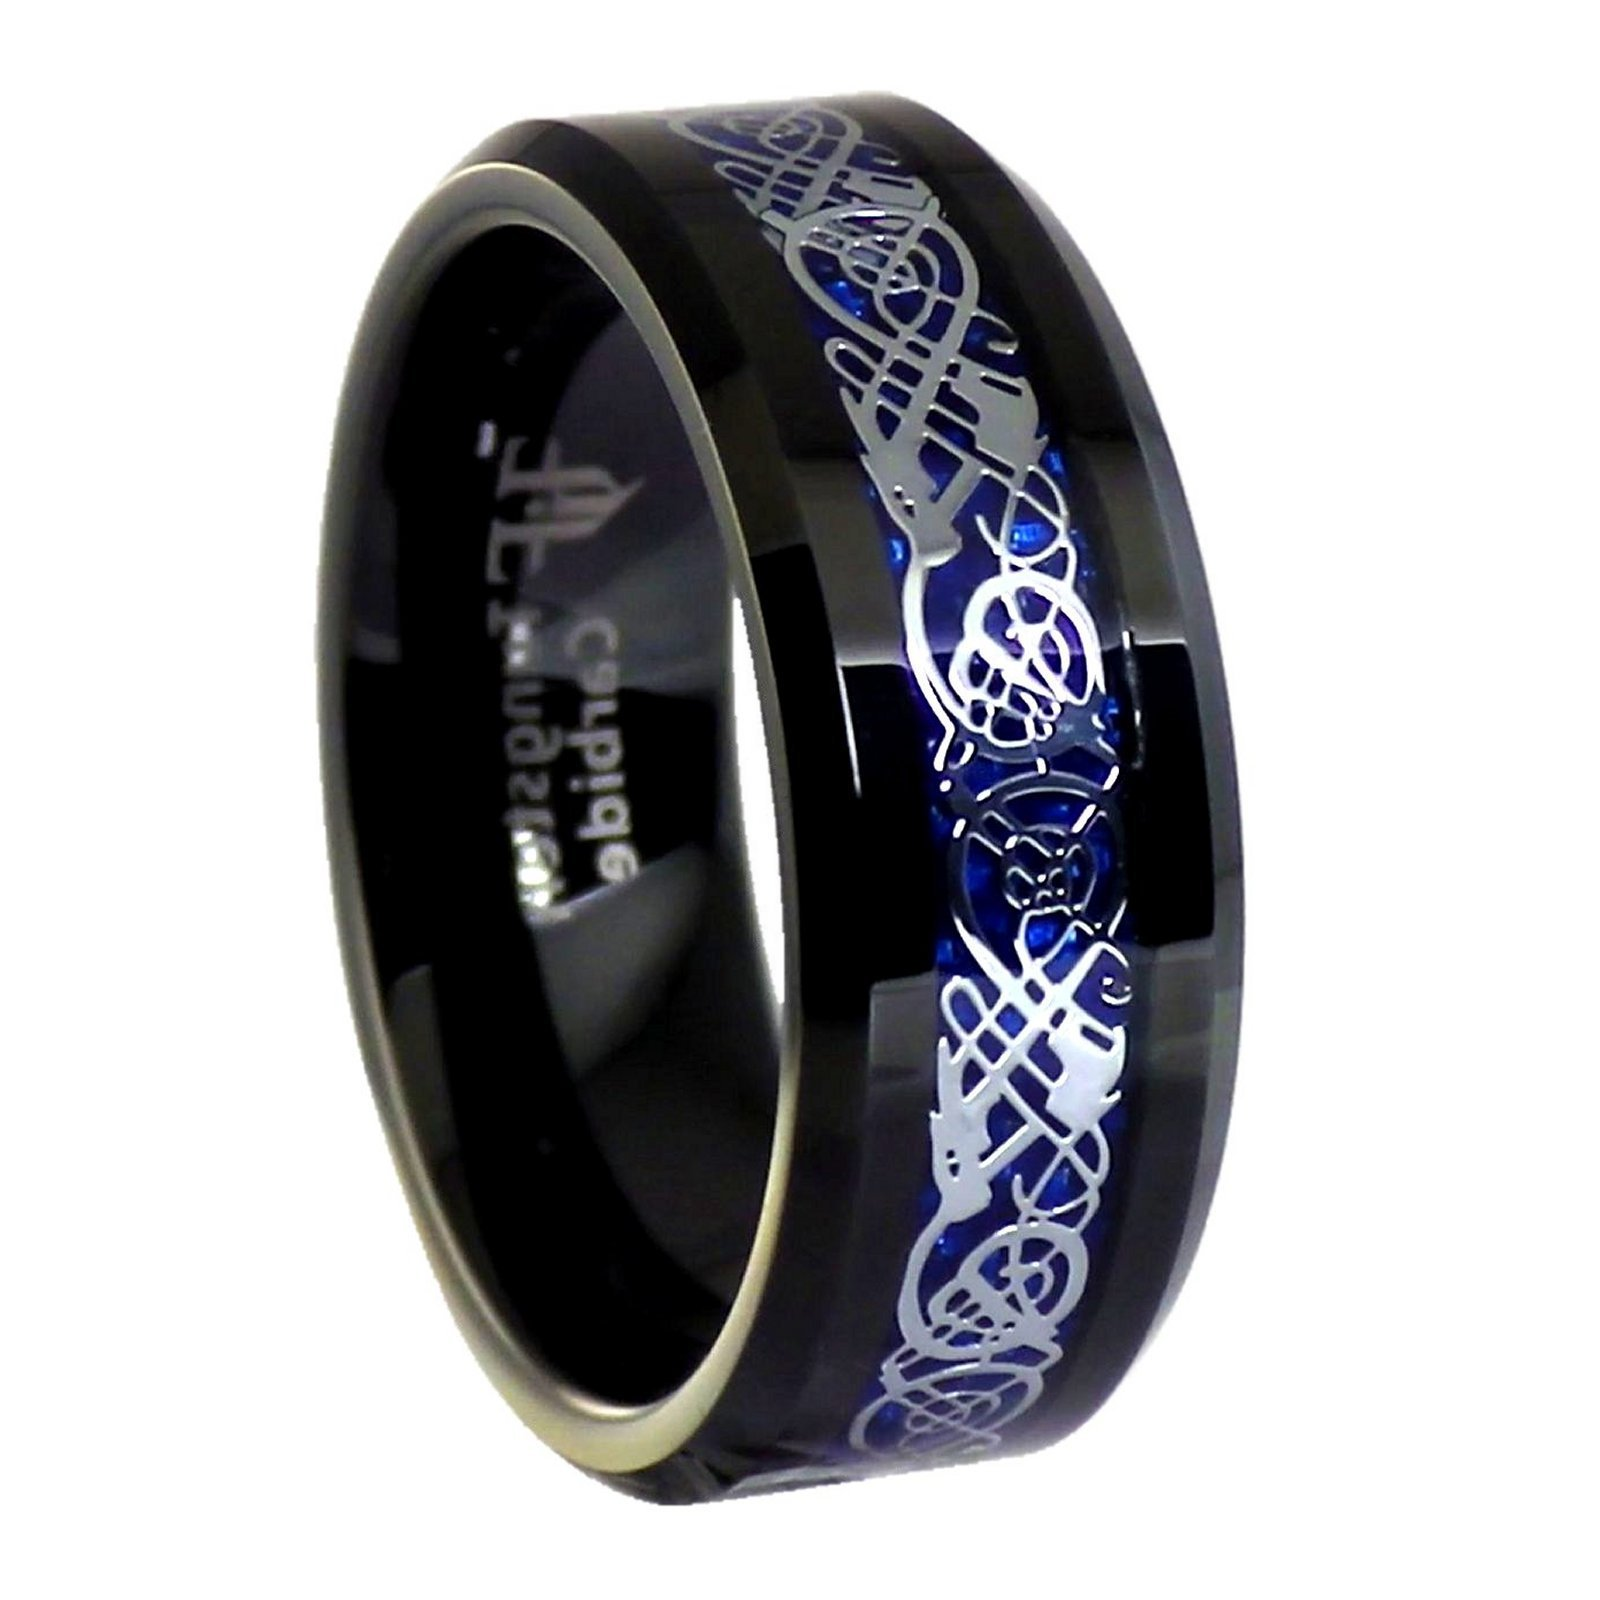 Fantasy Forge Jewelry Blue Carbon Fiber Celtic Dragon Black Tungsten Ring Size 7 by Fantasy Forge Jewelry (Image #2)